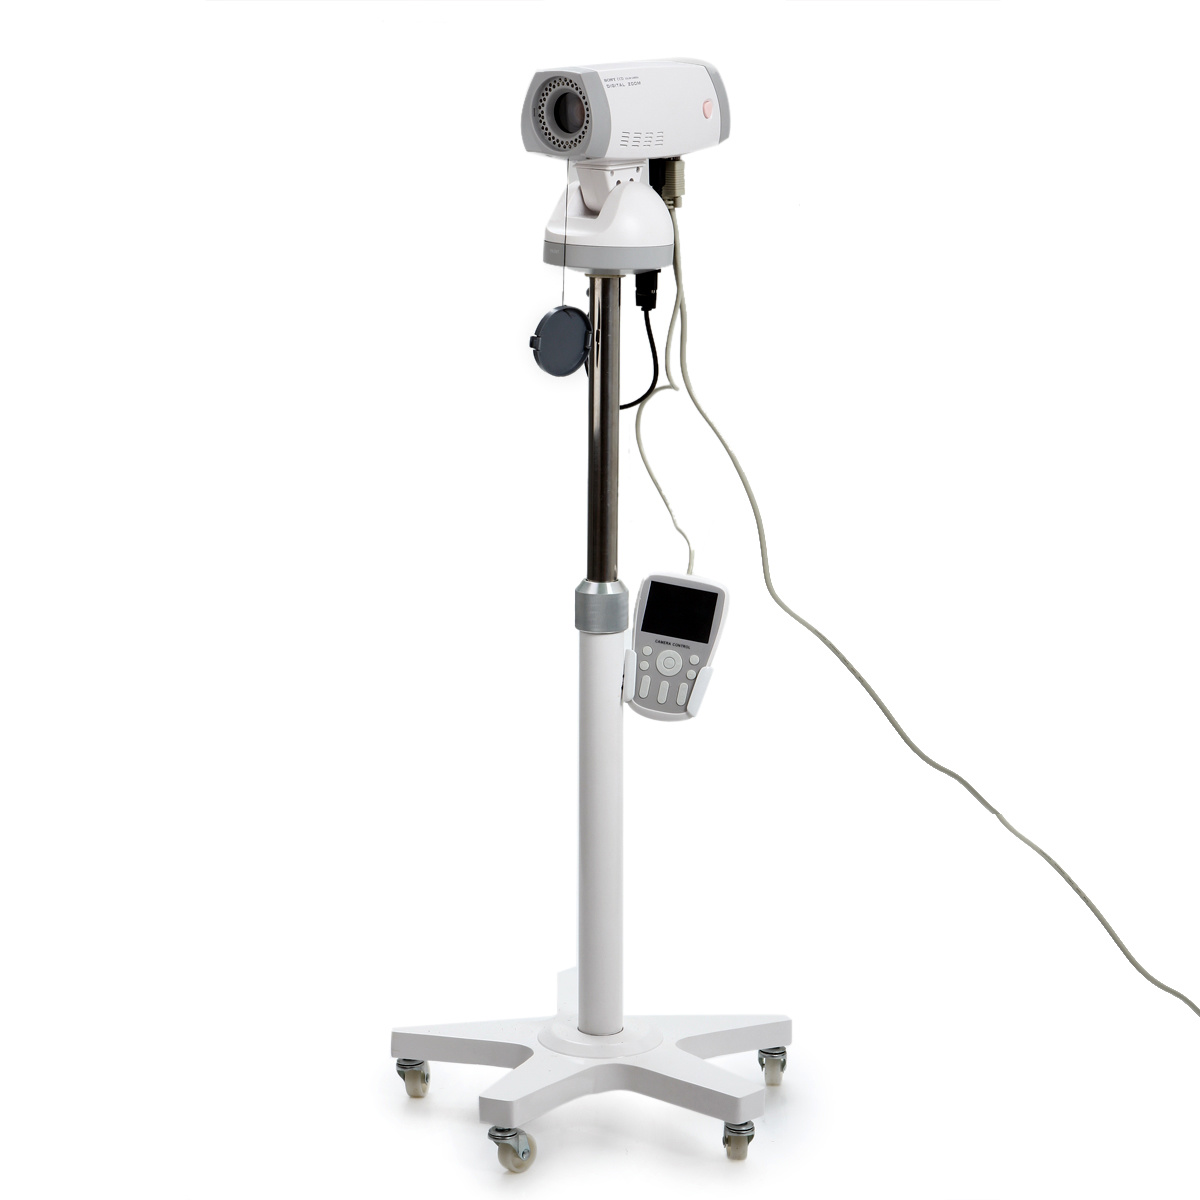 High-End Electronic Colposcope for Gynecology Rcs-500 Sony Camera CCD 800, 000 Pixels Optional 1, 000, 000 Pixels -Candice